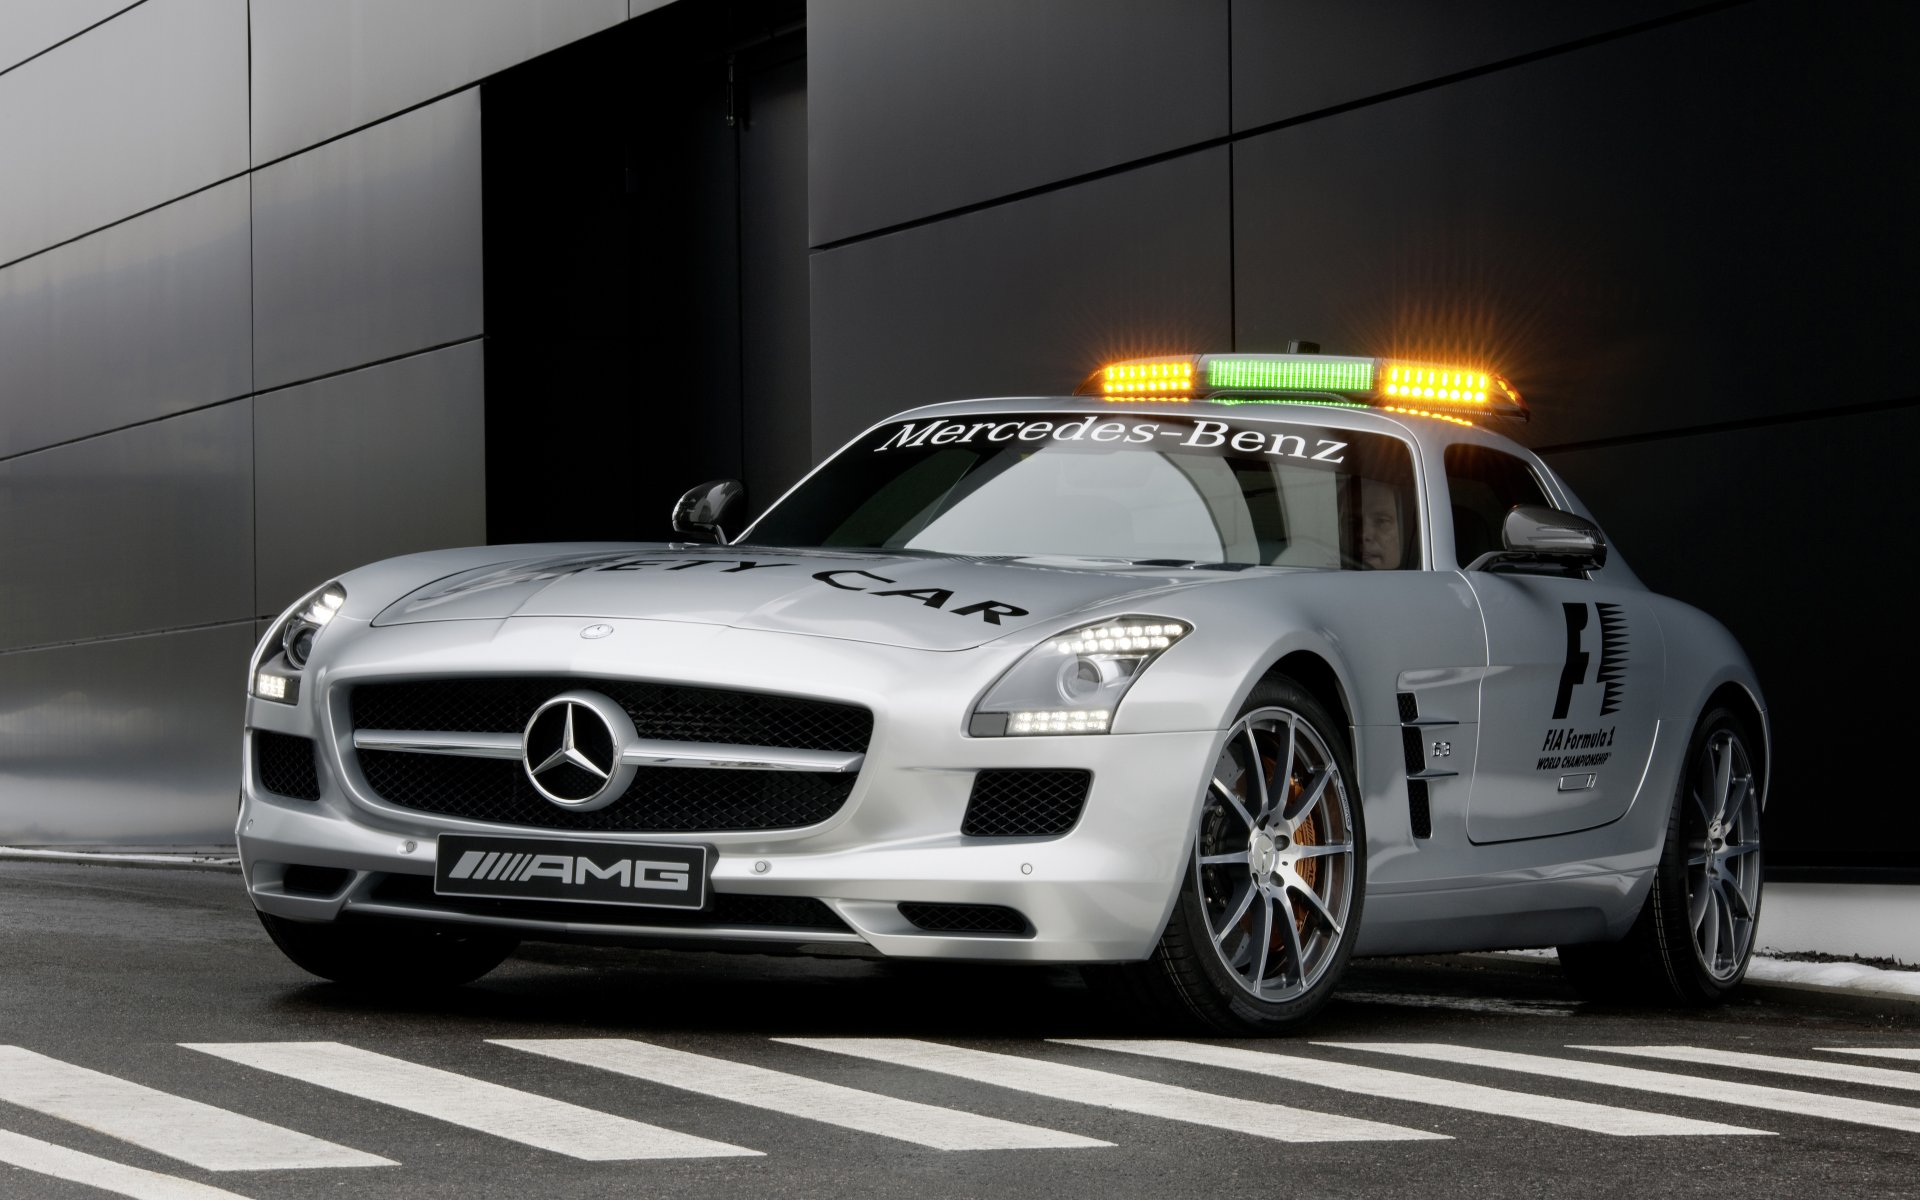 2010 F1 Safety Car SLS AMG 05